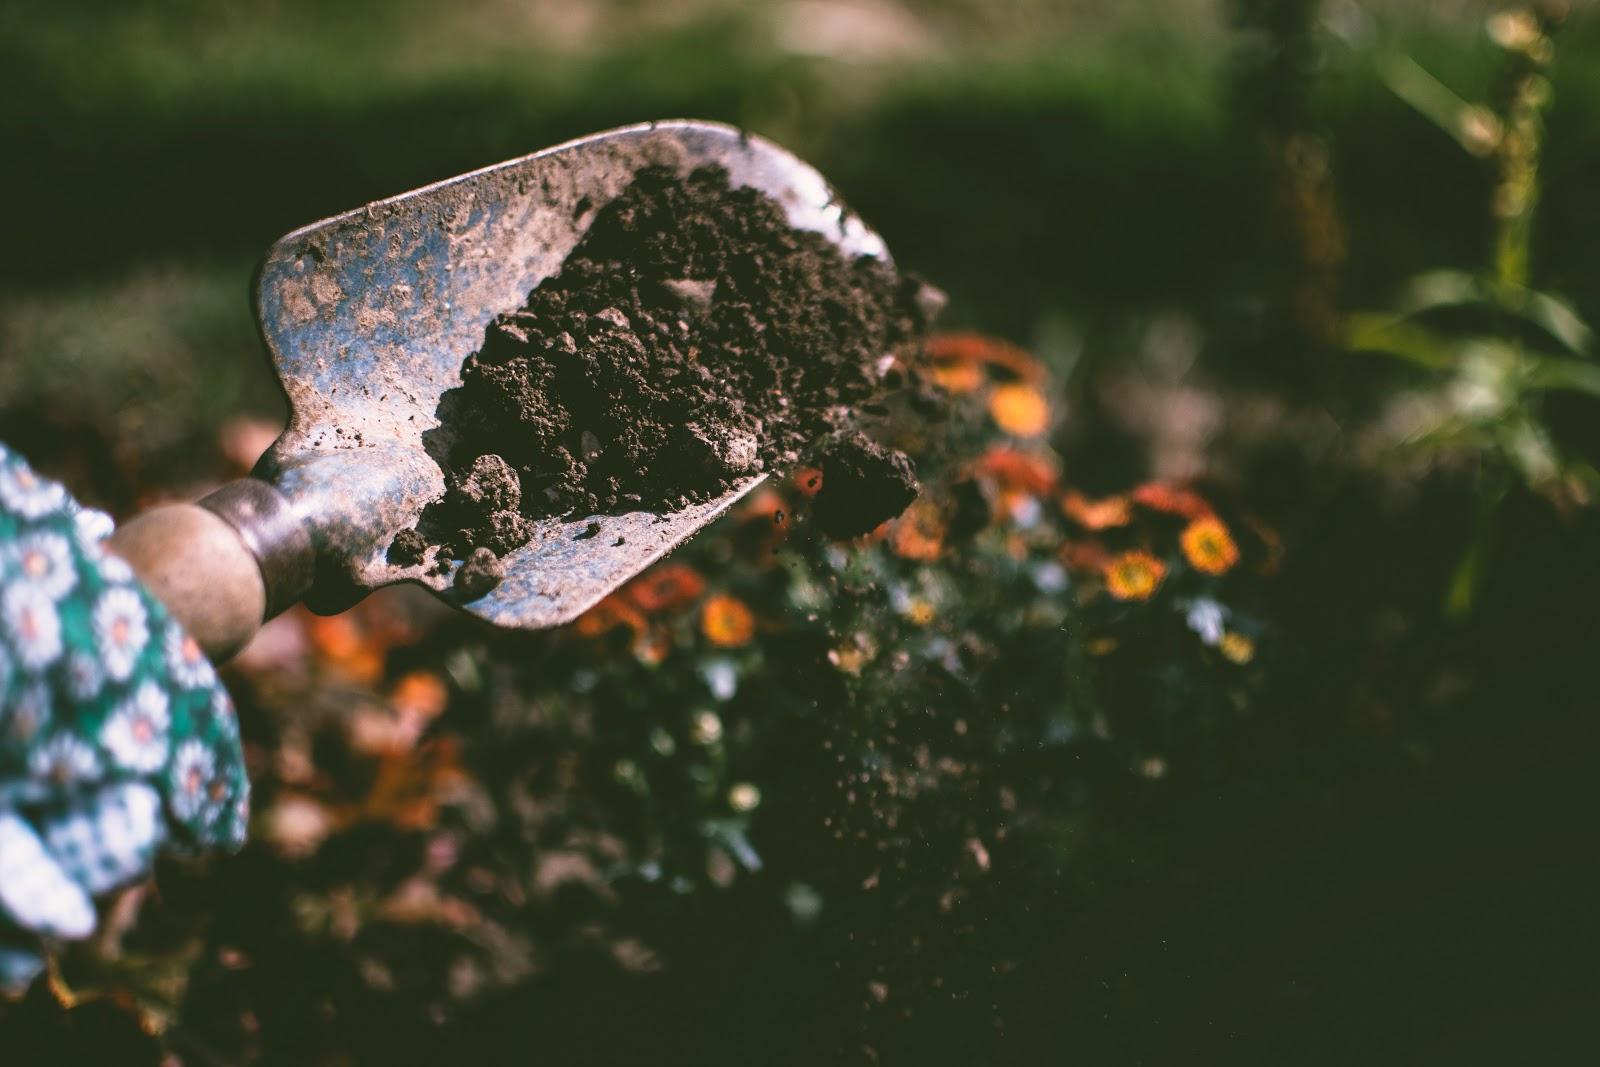 A garden trowel filled with dark soil is spilling some to the ground. Flowers can be seen in the background.